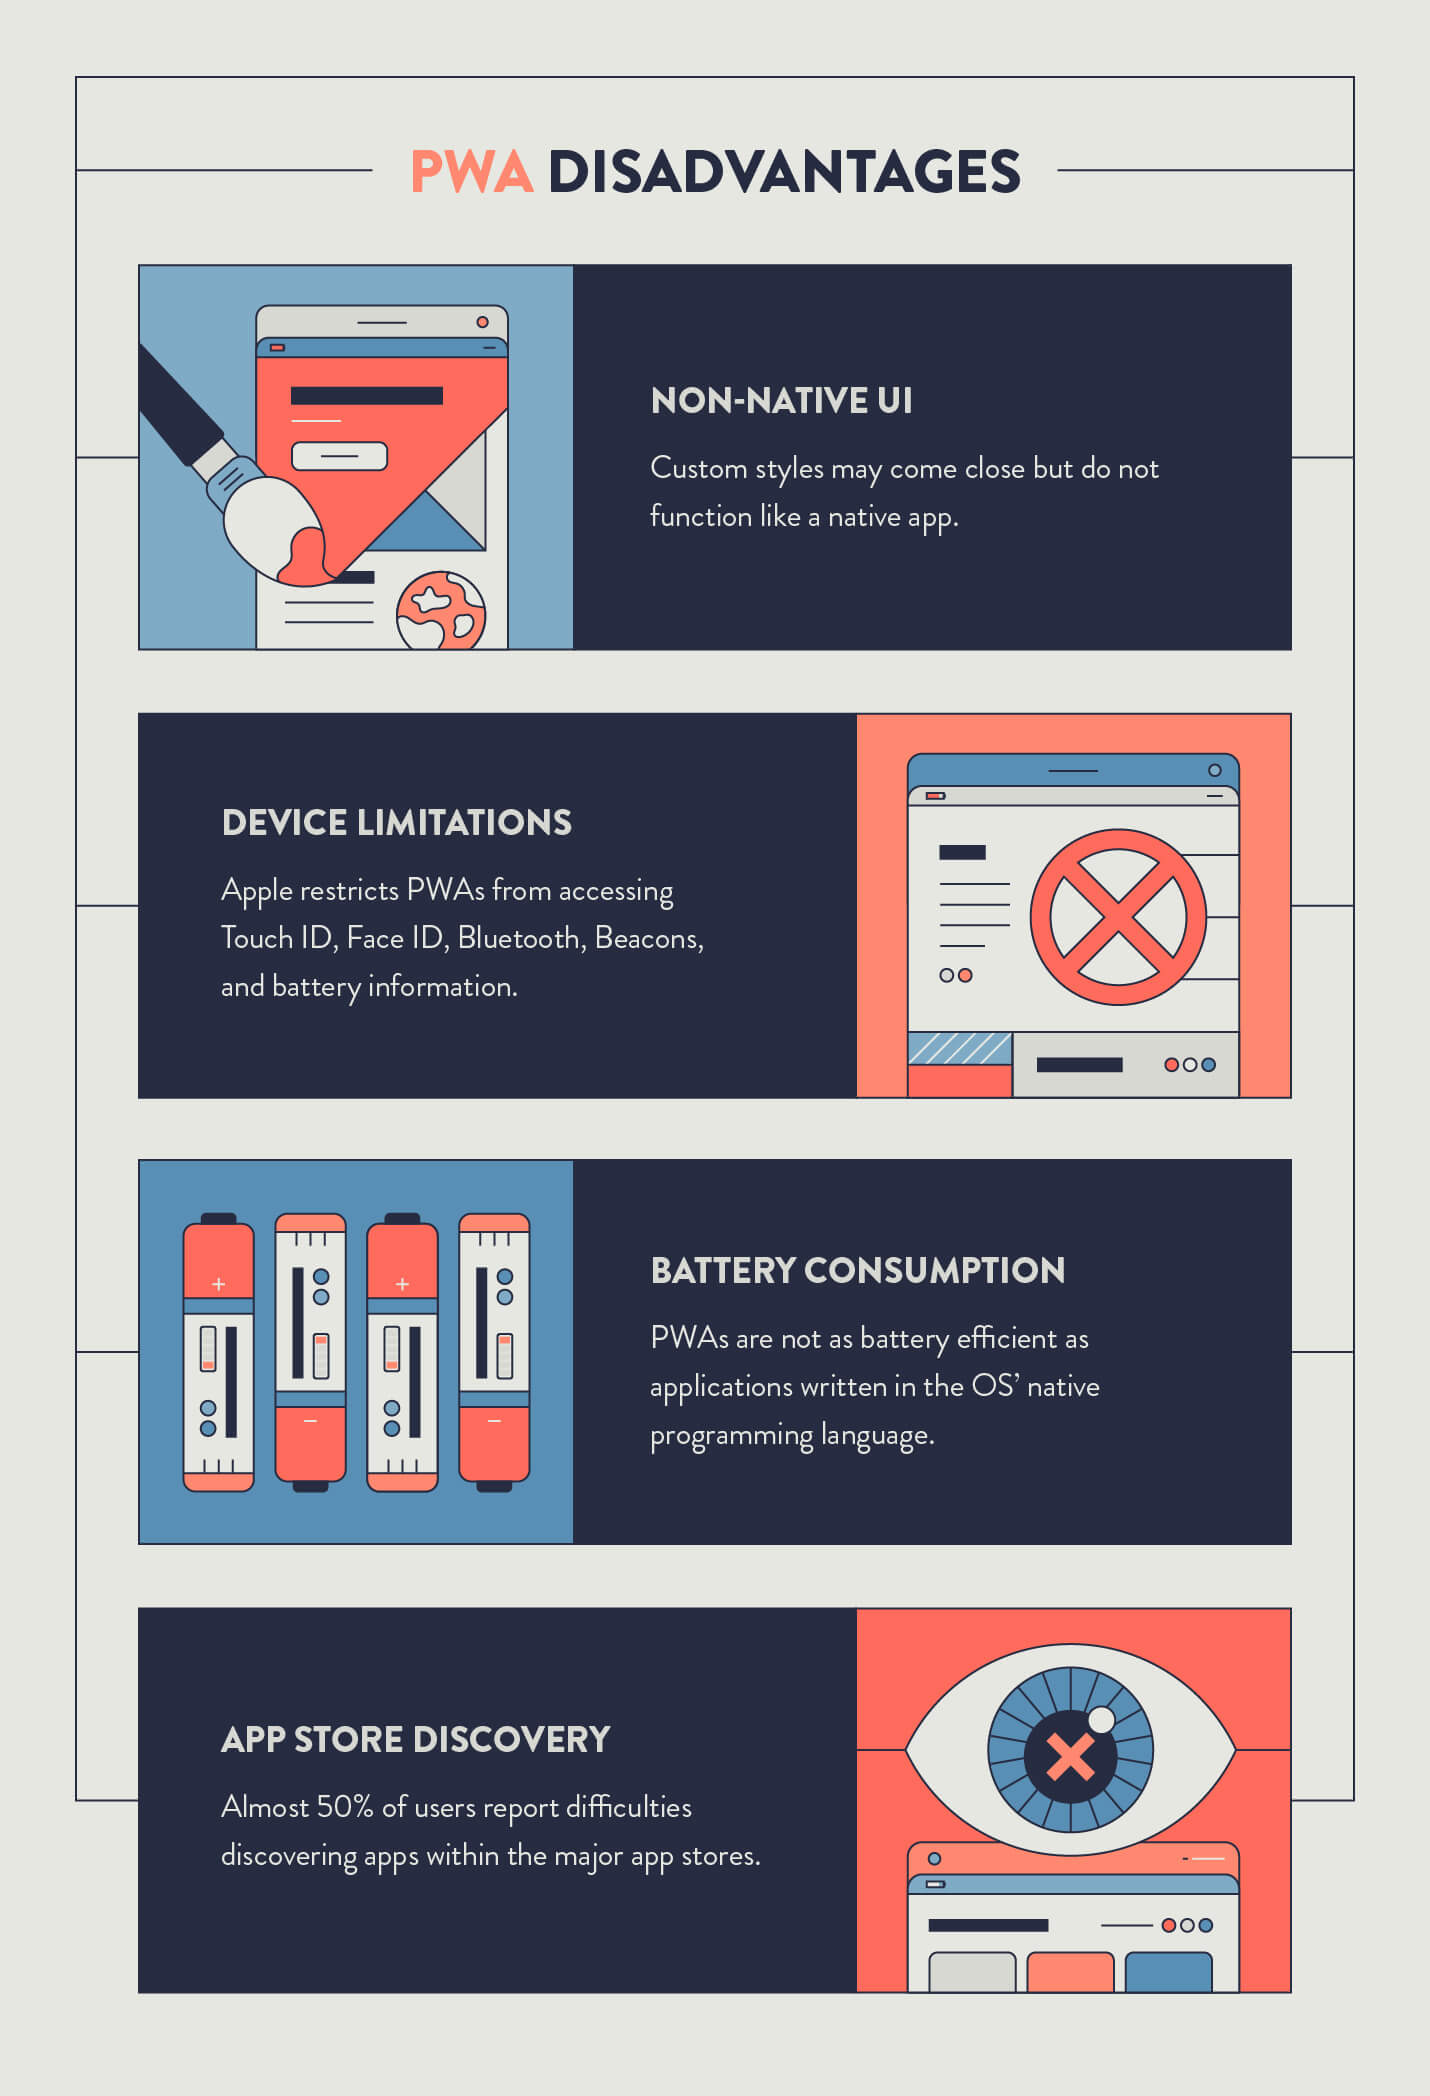 disadvantages of progressive web apps including battery consumption, app store discovery, device limitations, and non-native UI